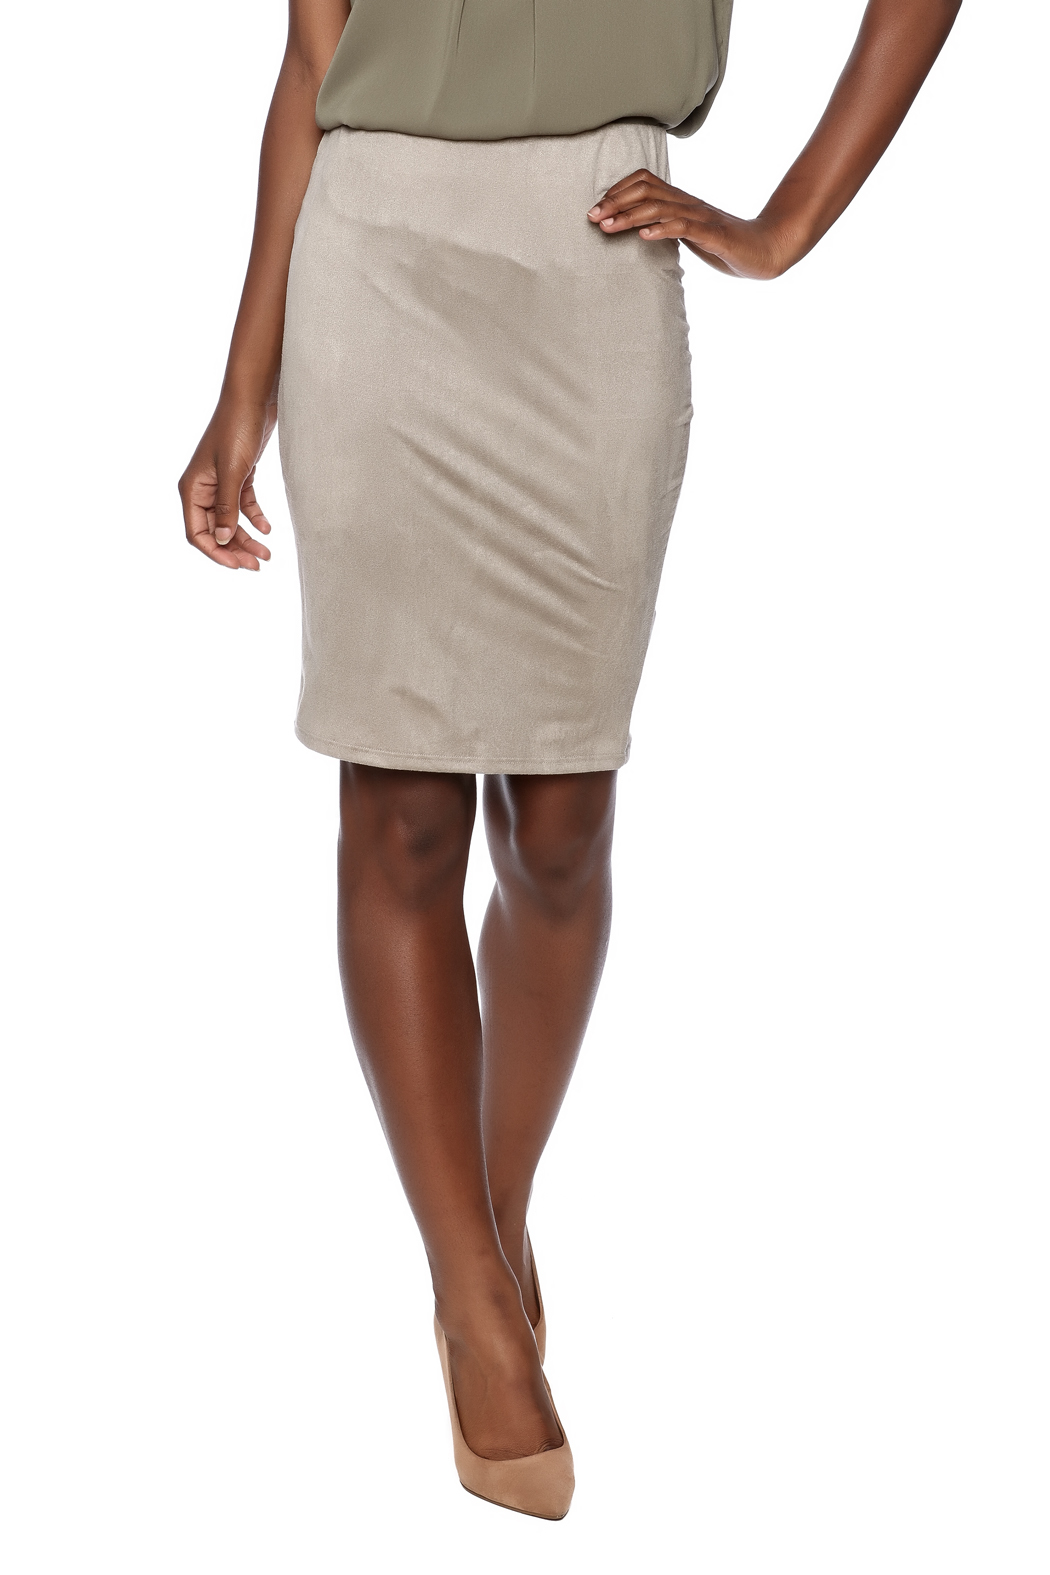 solemio taupe suedette pencil skirt from michigan by